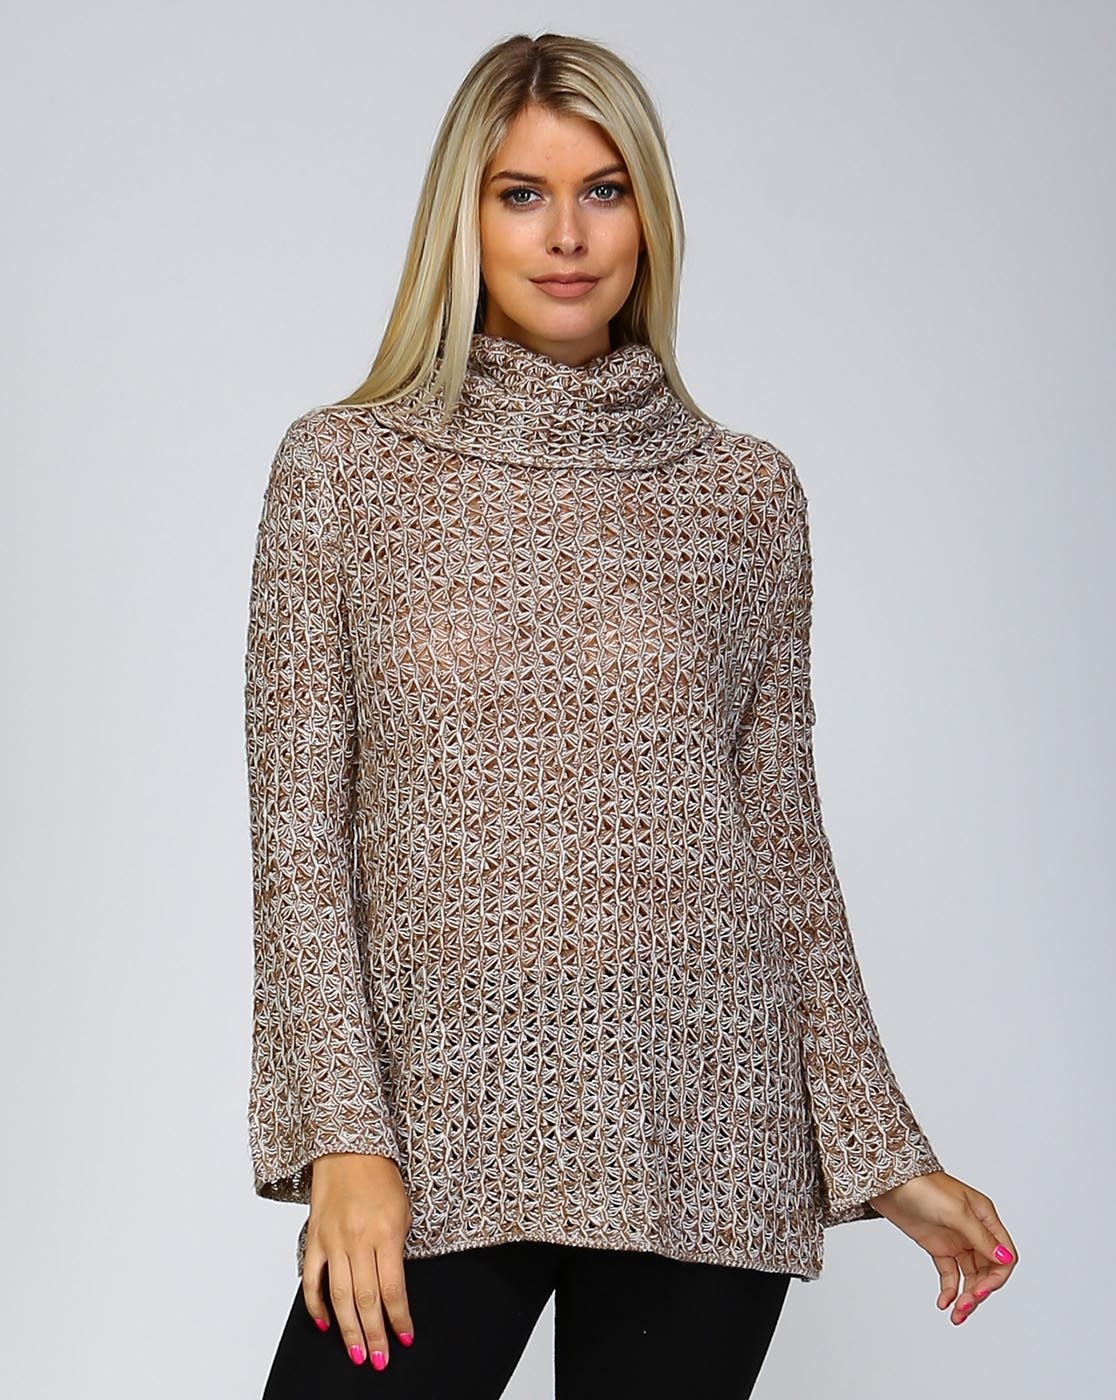 LOOSE KNIT COWL NECK SWEATER - orangeshine.com